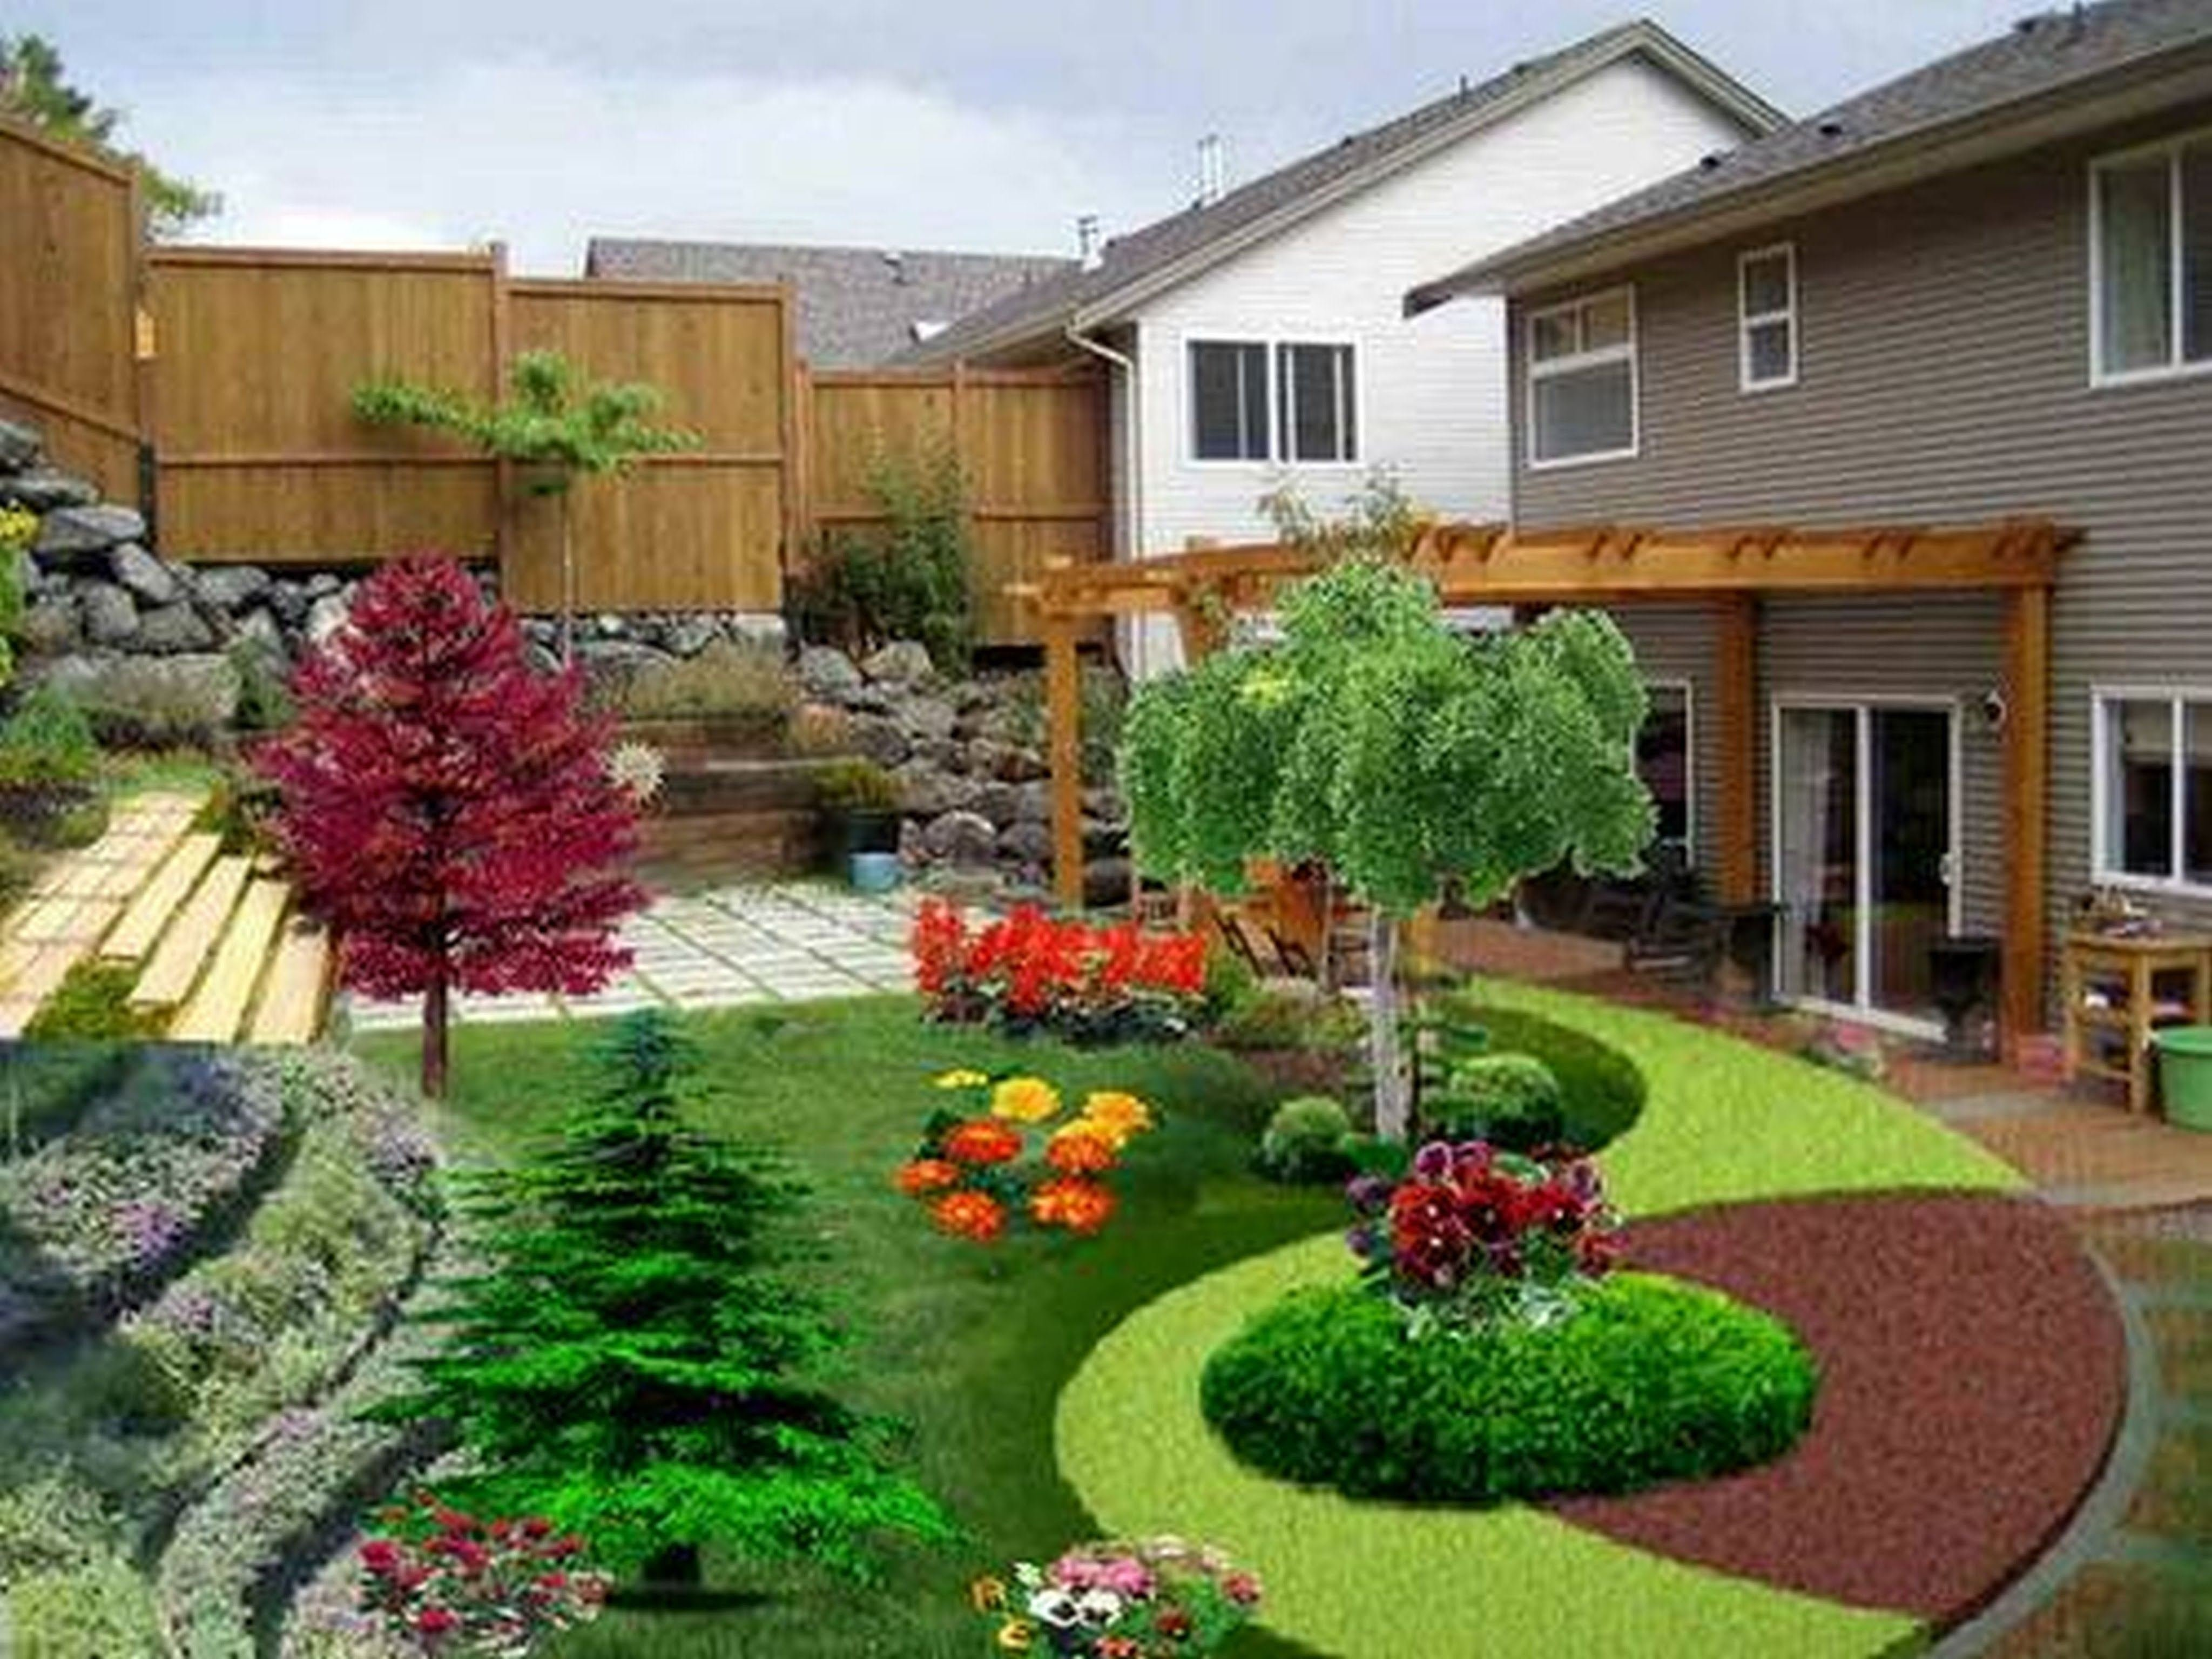 10 Stunning Landscaping Ideas Front Of House front garden ideas for front of house nice tips for front yard 3 2020